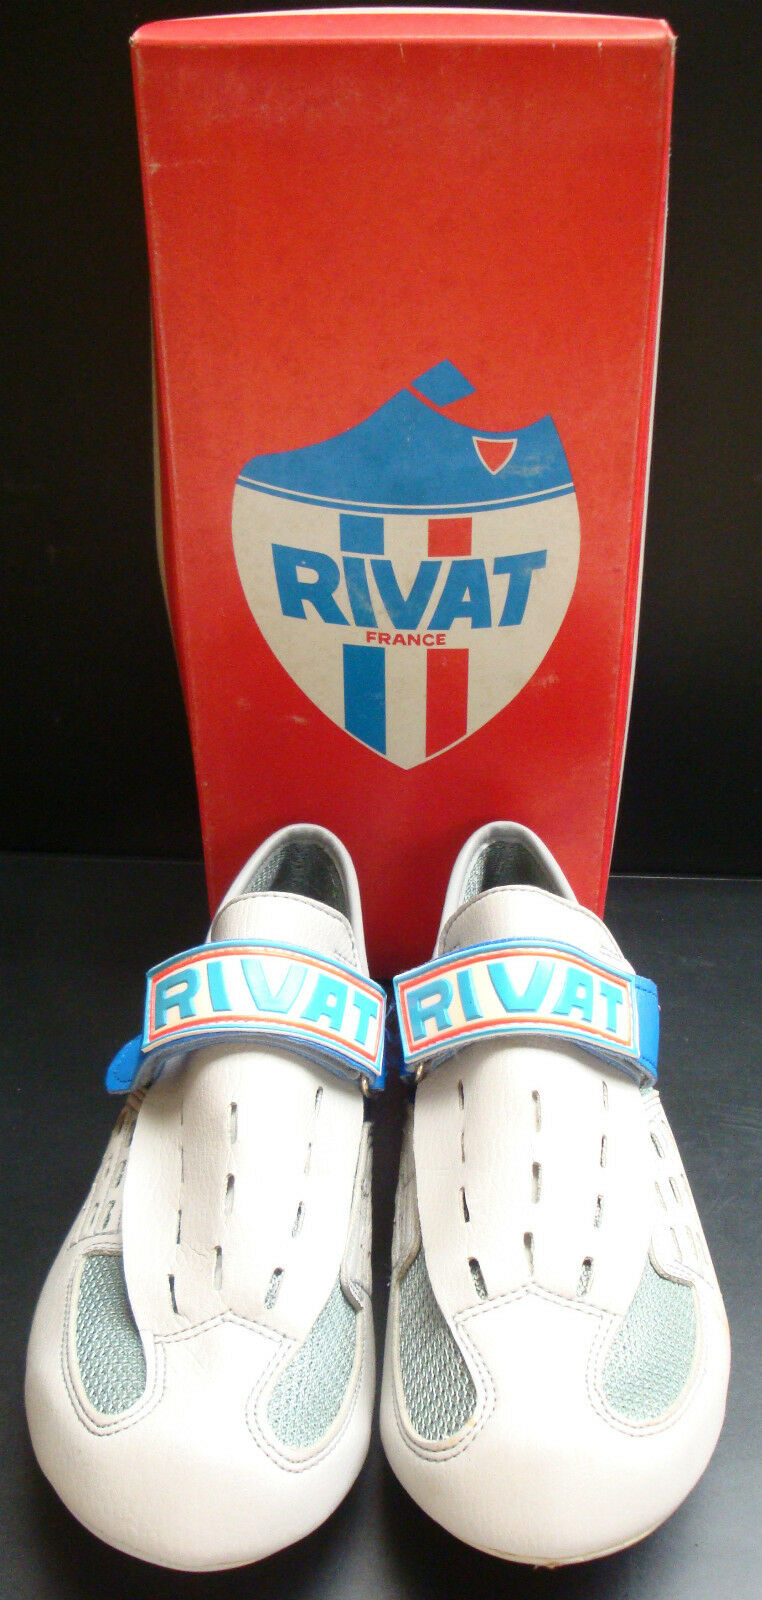 NIB  RIVAT SHOES SIZE 39 VINTAGE MADE IN FRANCE 3